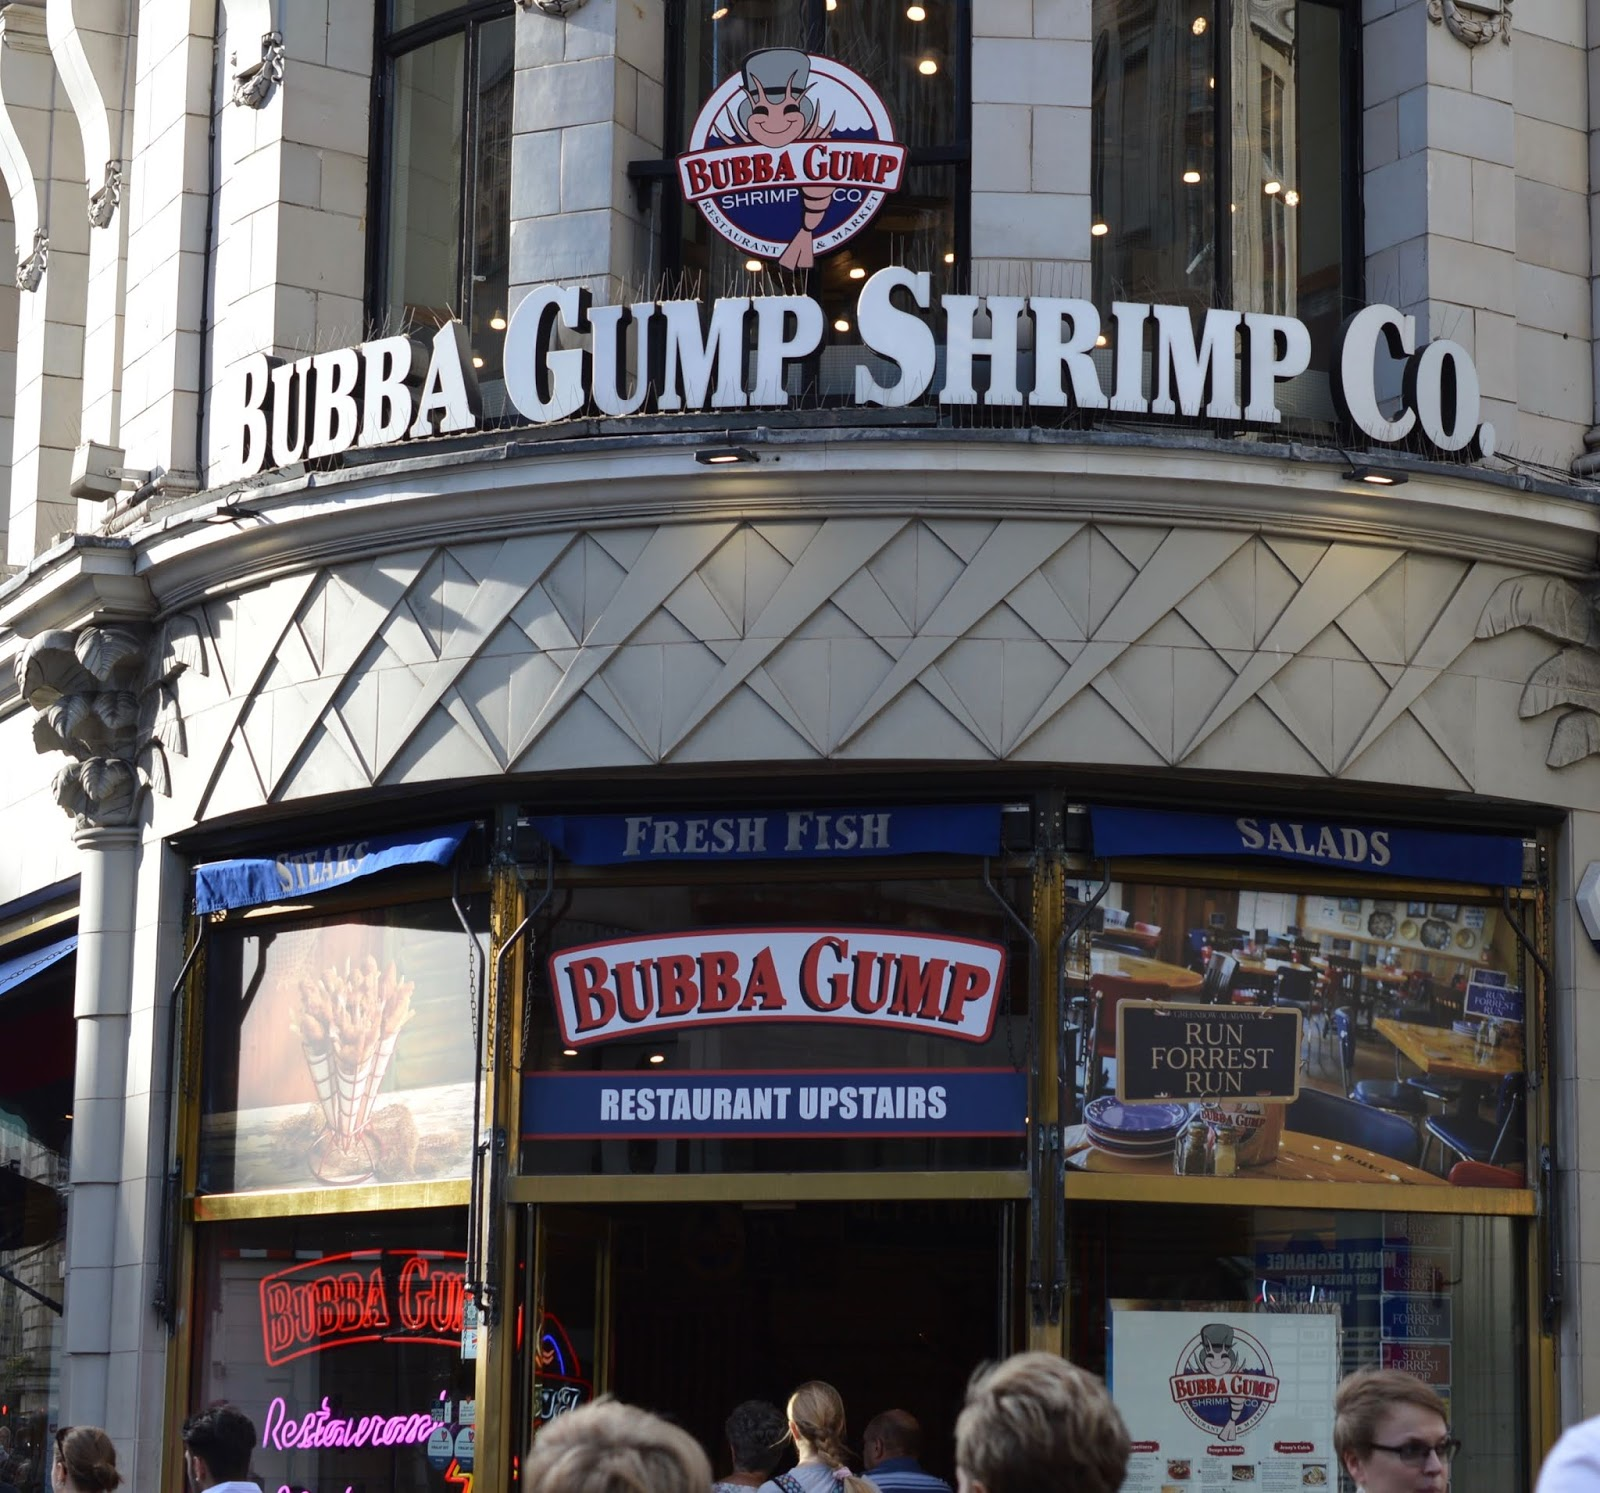 The LNER Family Return Ticket Newcastle-London. #OurLNER #FamilyReturn  - Bubba Gump Restaurant London Leicester Square